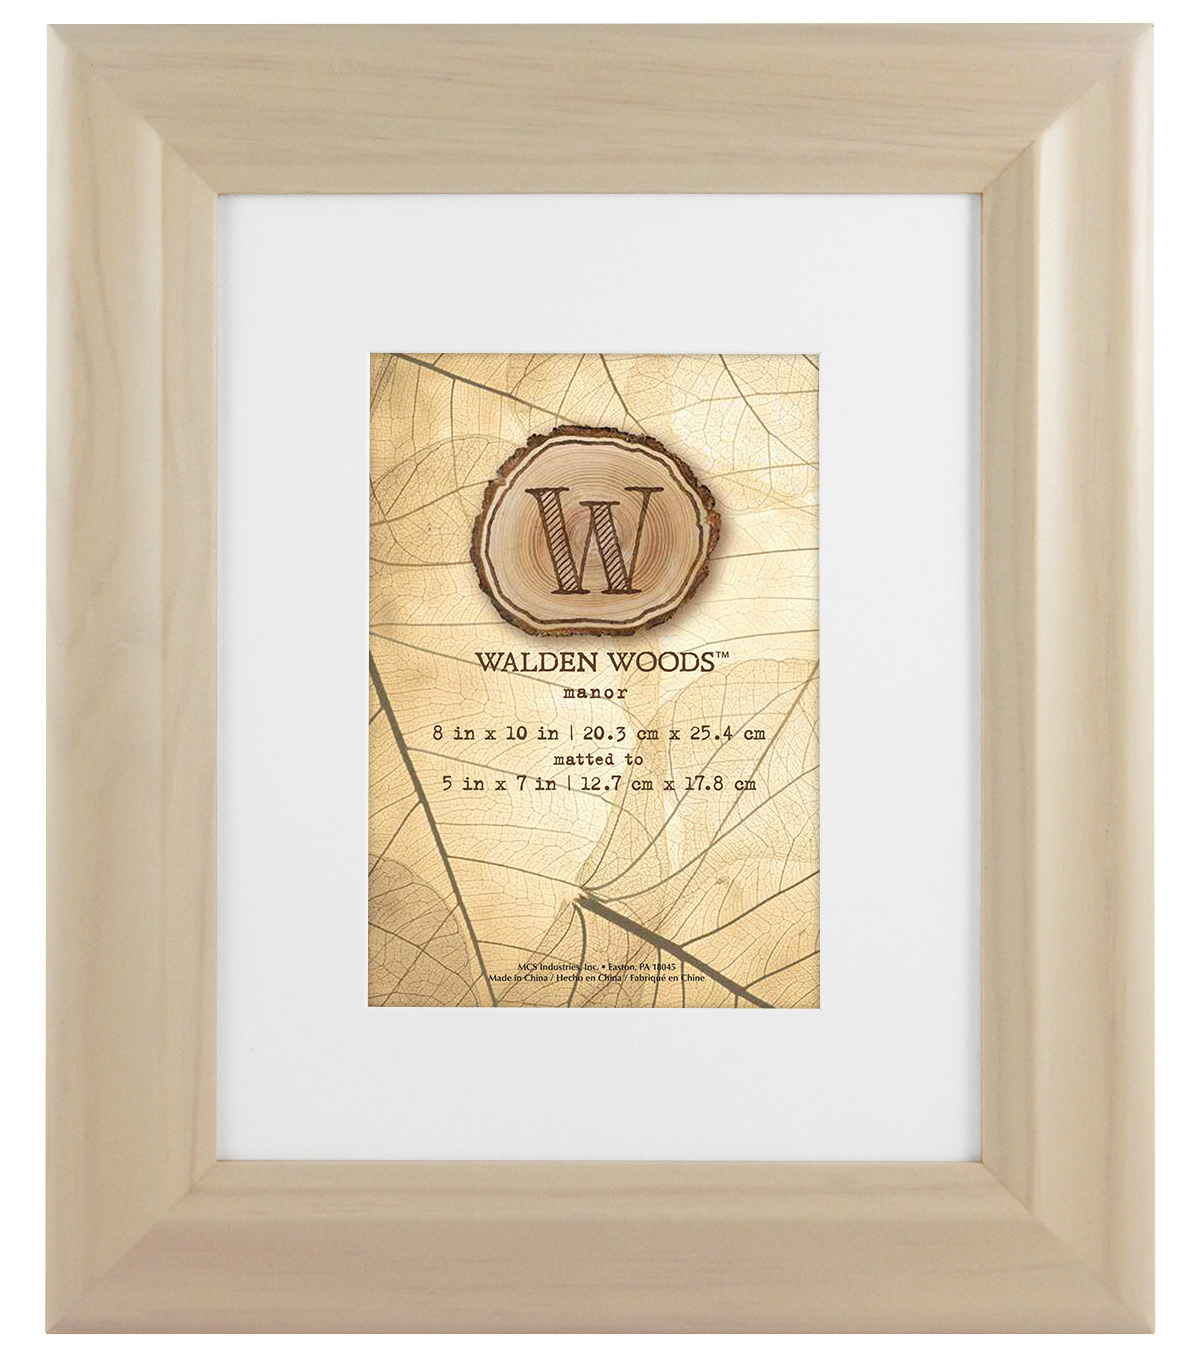 Walden Woods Wall Frame 8X10 To 5X7-White Wash